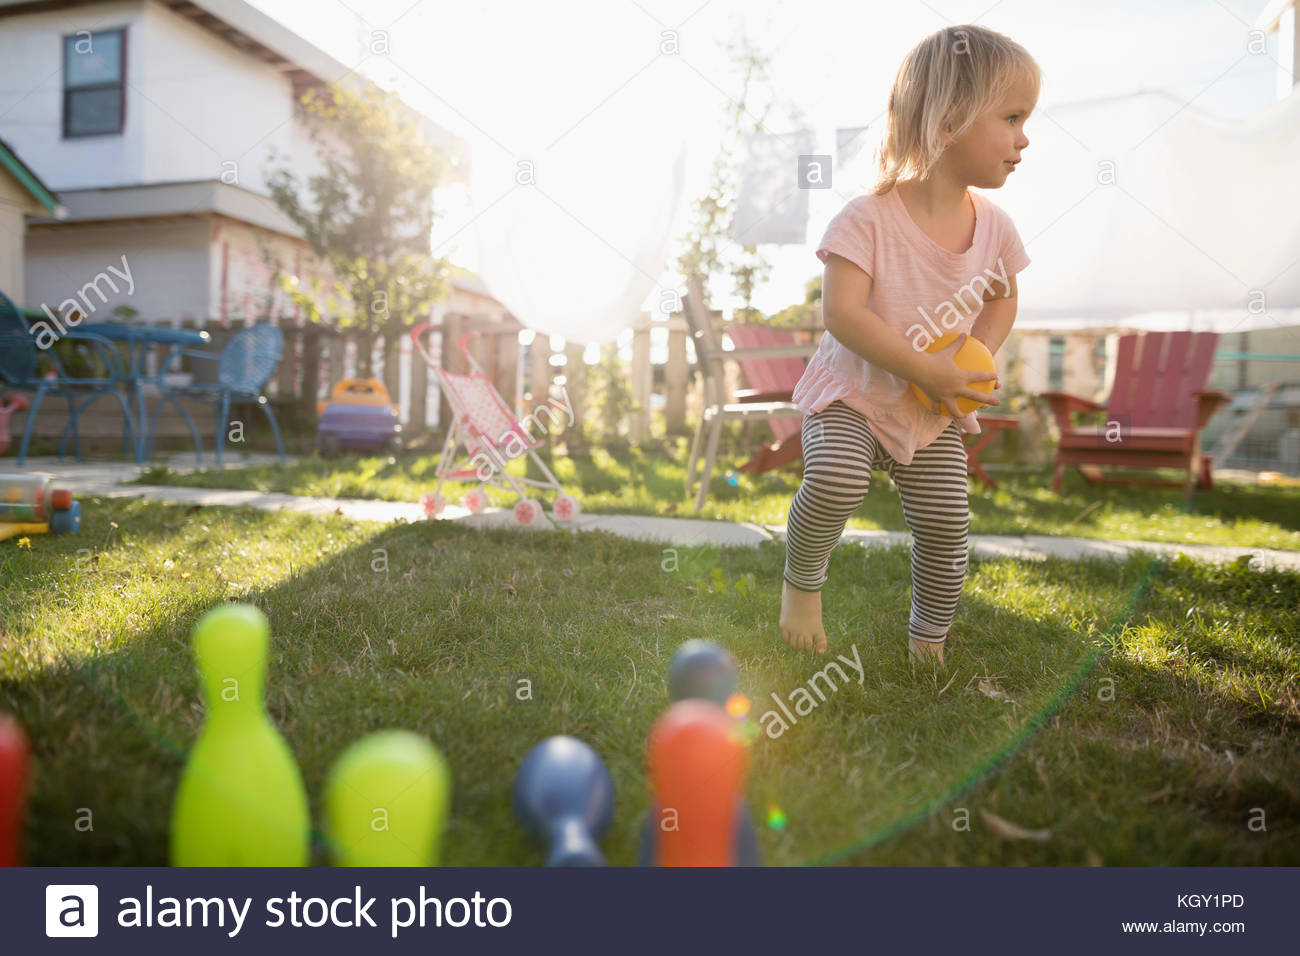 Cute toddler girl playing with bowling toy in grass in sunny backyard - Stock Image